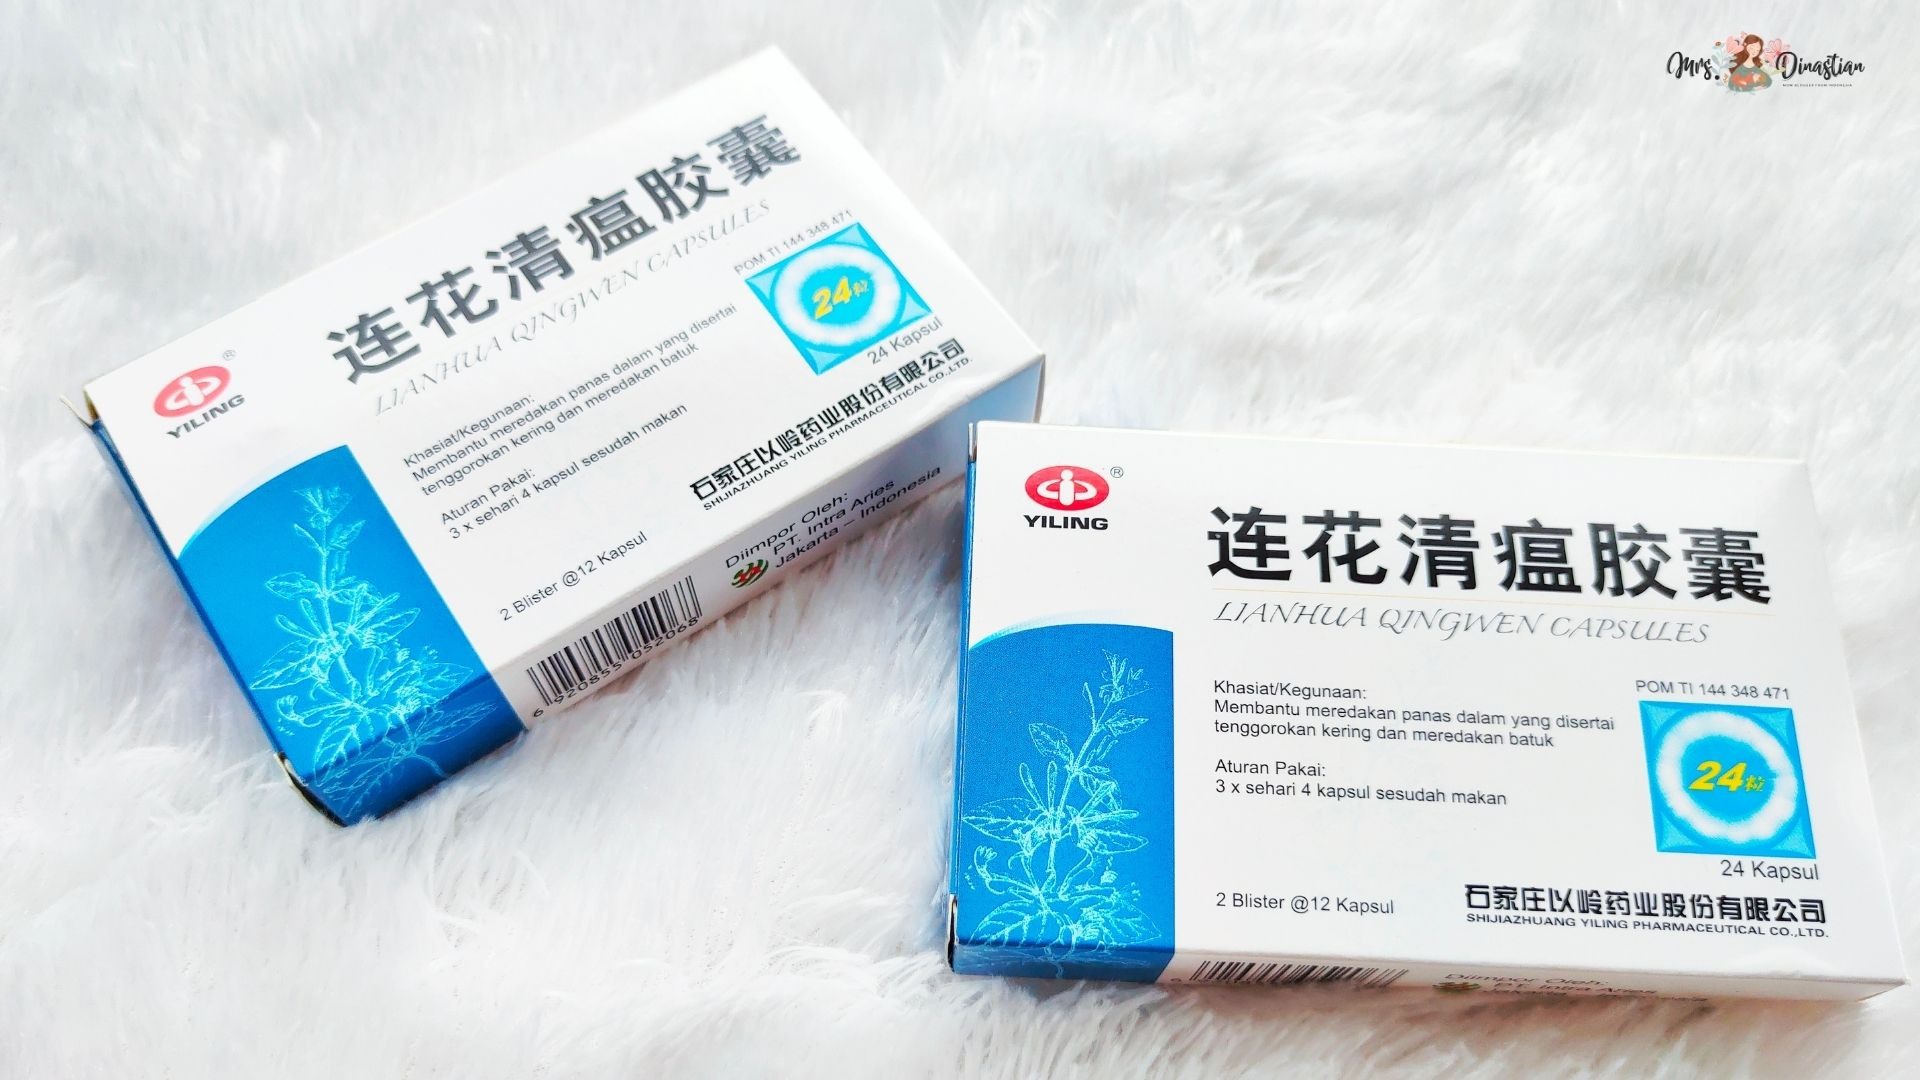 Lianhua Qingwen, Obat Herbal China, Covid-19